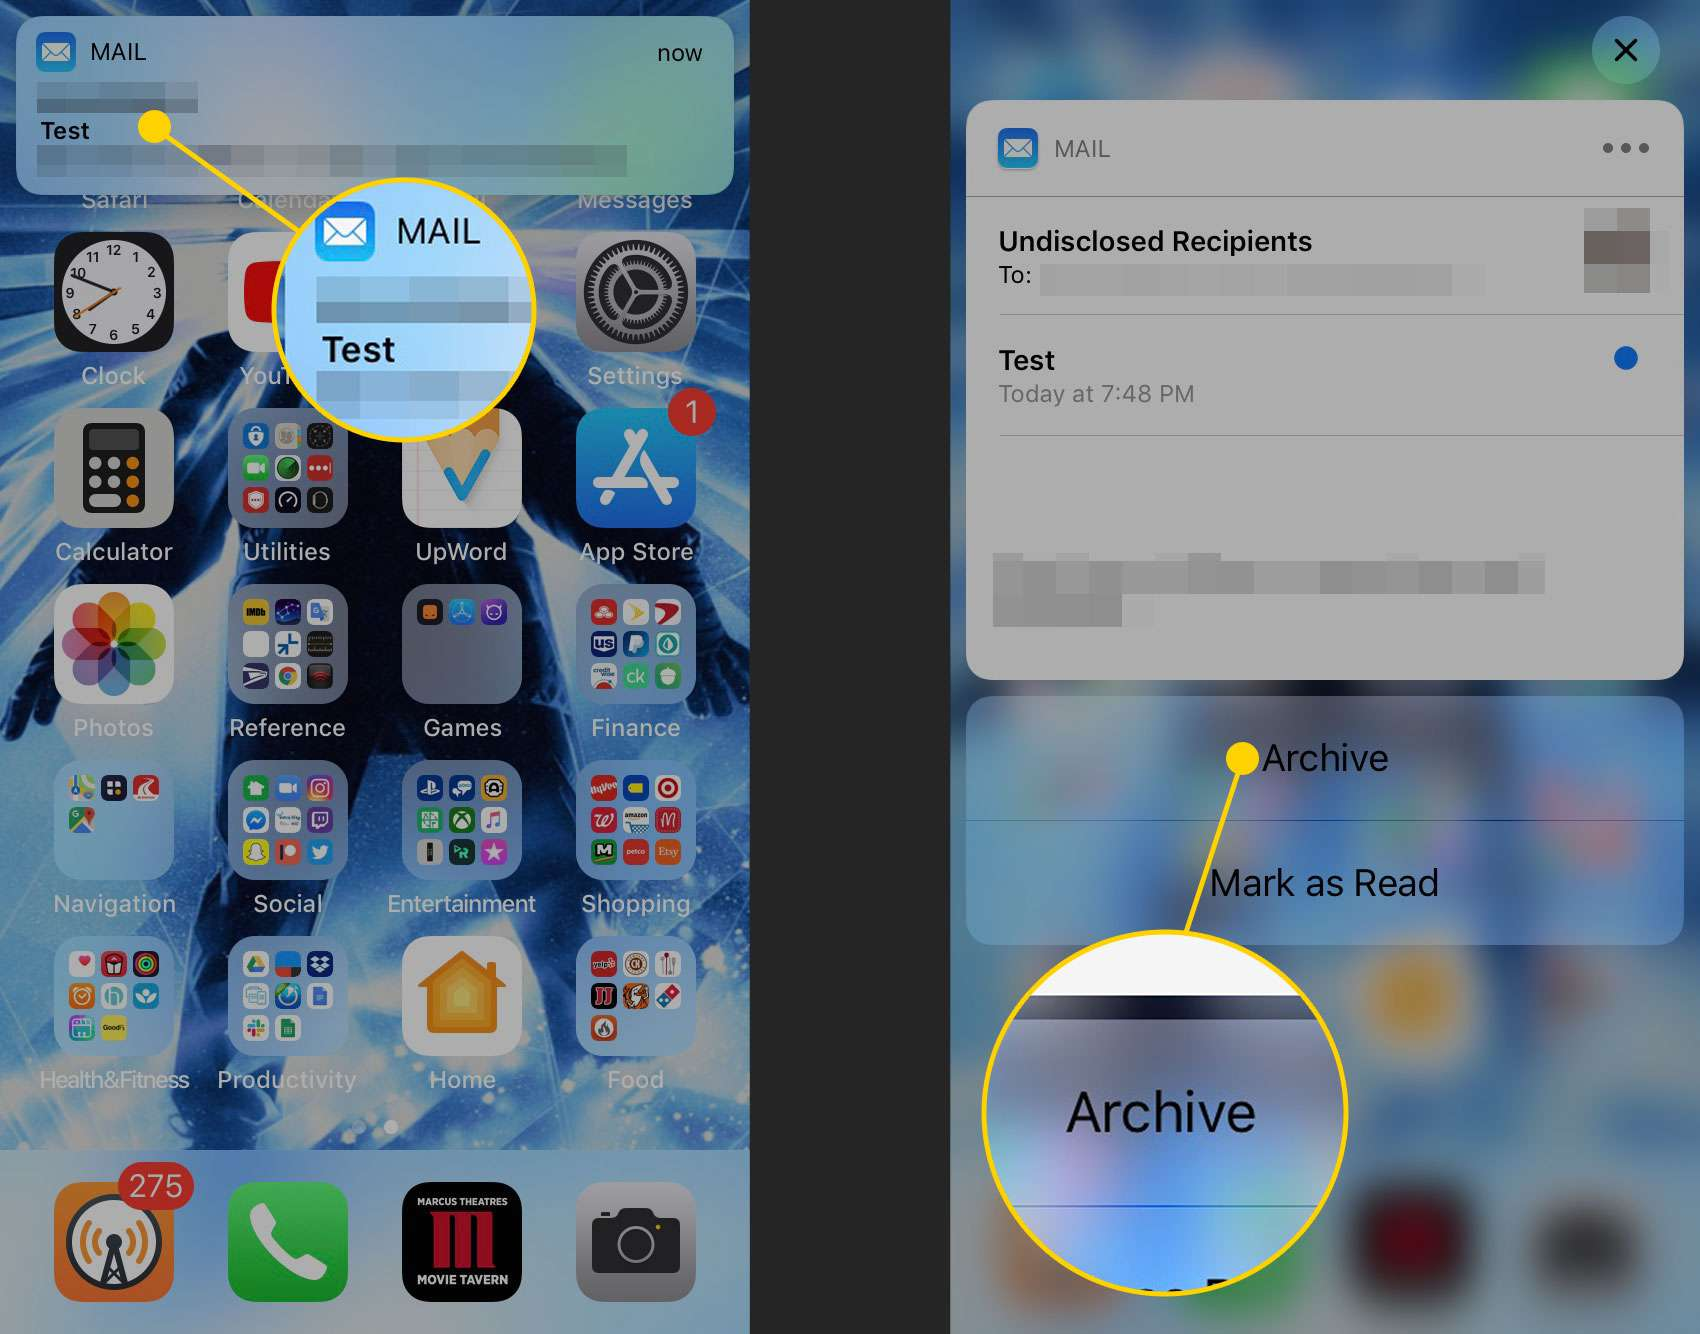 Delete Mail in iOS Mail Right From Notification Center